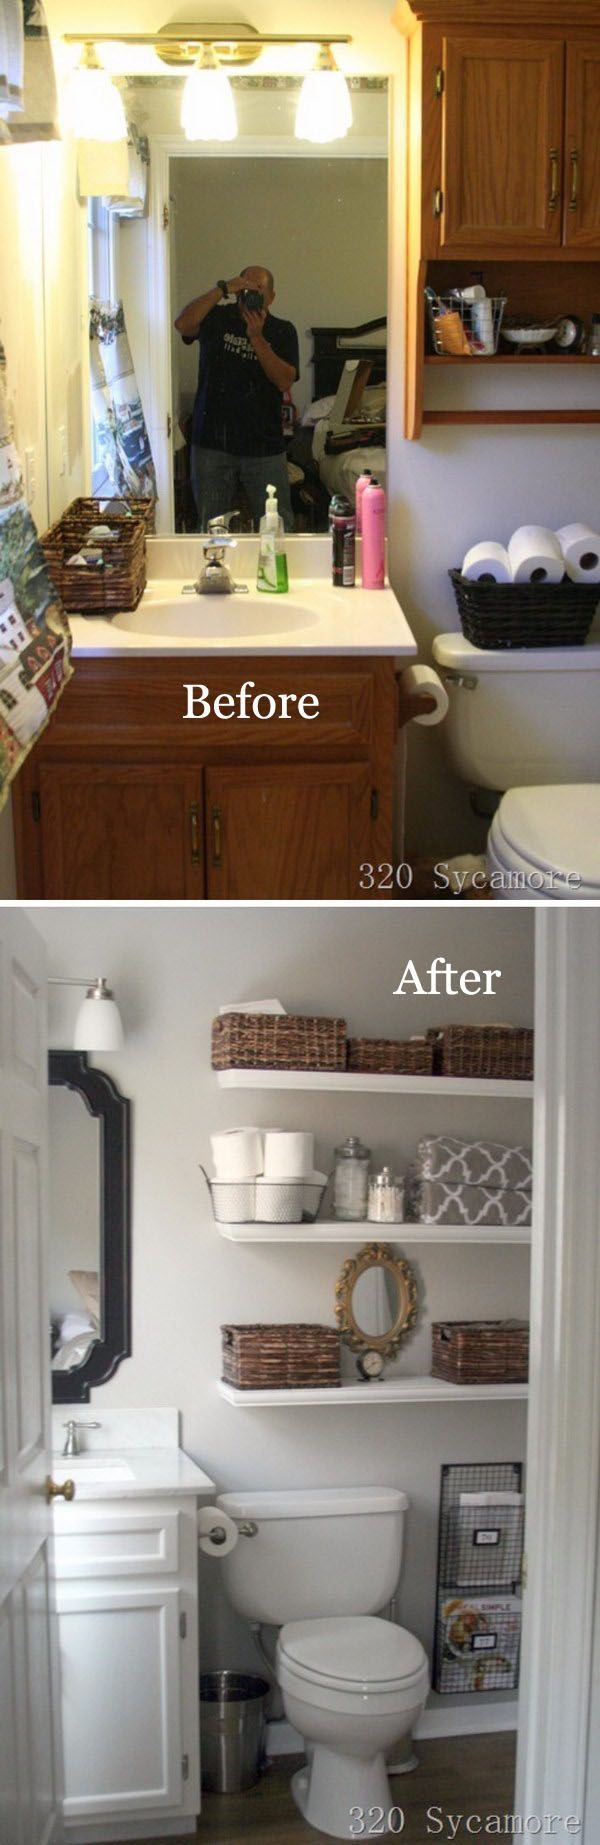 best 25 small basement bathroom ideas on pinterest basement best 25 small basement bathroom ideas on pinterest basement bathroom ideas basement bathroom and small master bathroom ideas